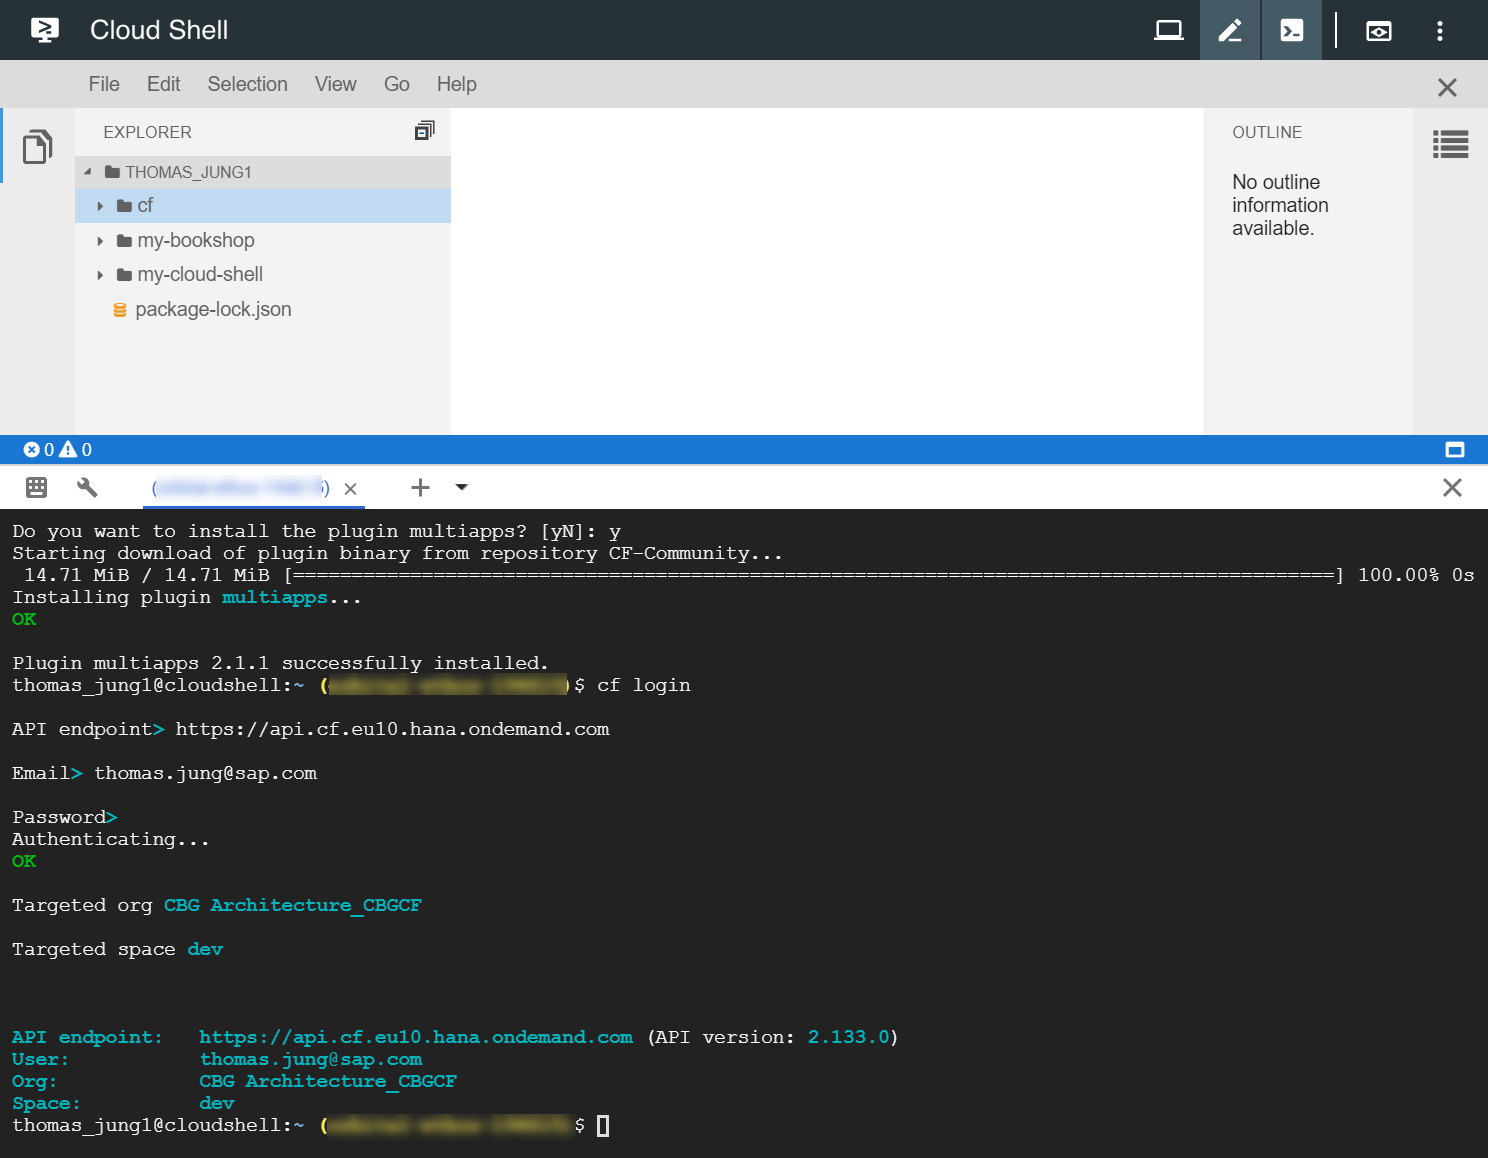 SAP Development Using Google Cloud Shell | SAP Blogs